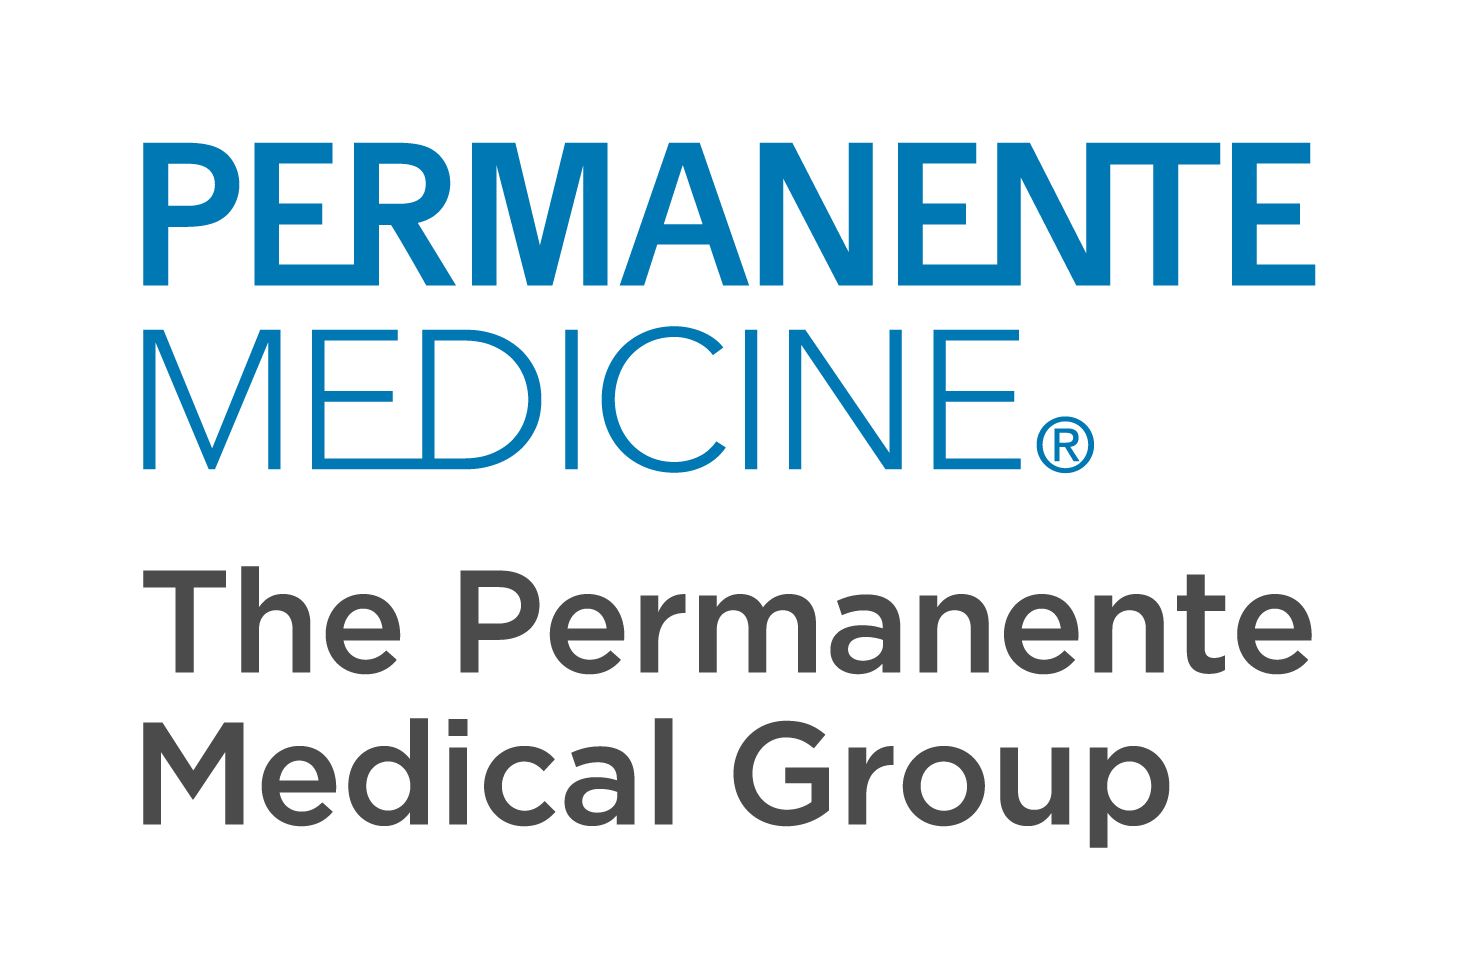 Dermatology Opportunity in Central Valley, California - St. Joseph's Medical Center and Kaiser Permanente Stockton Medical Offices